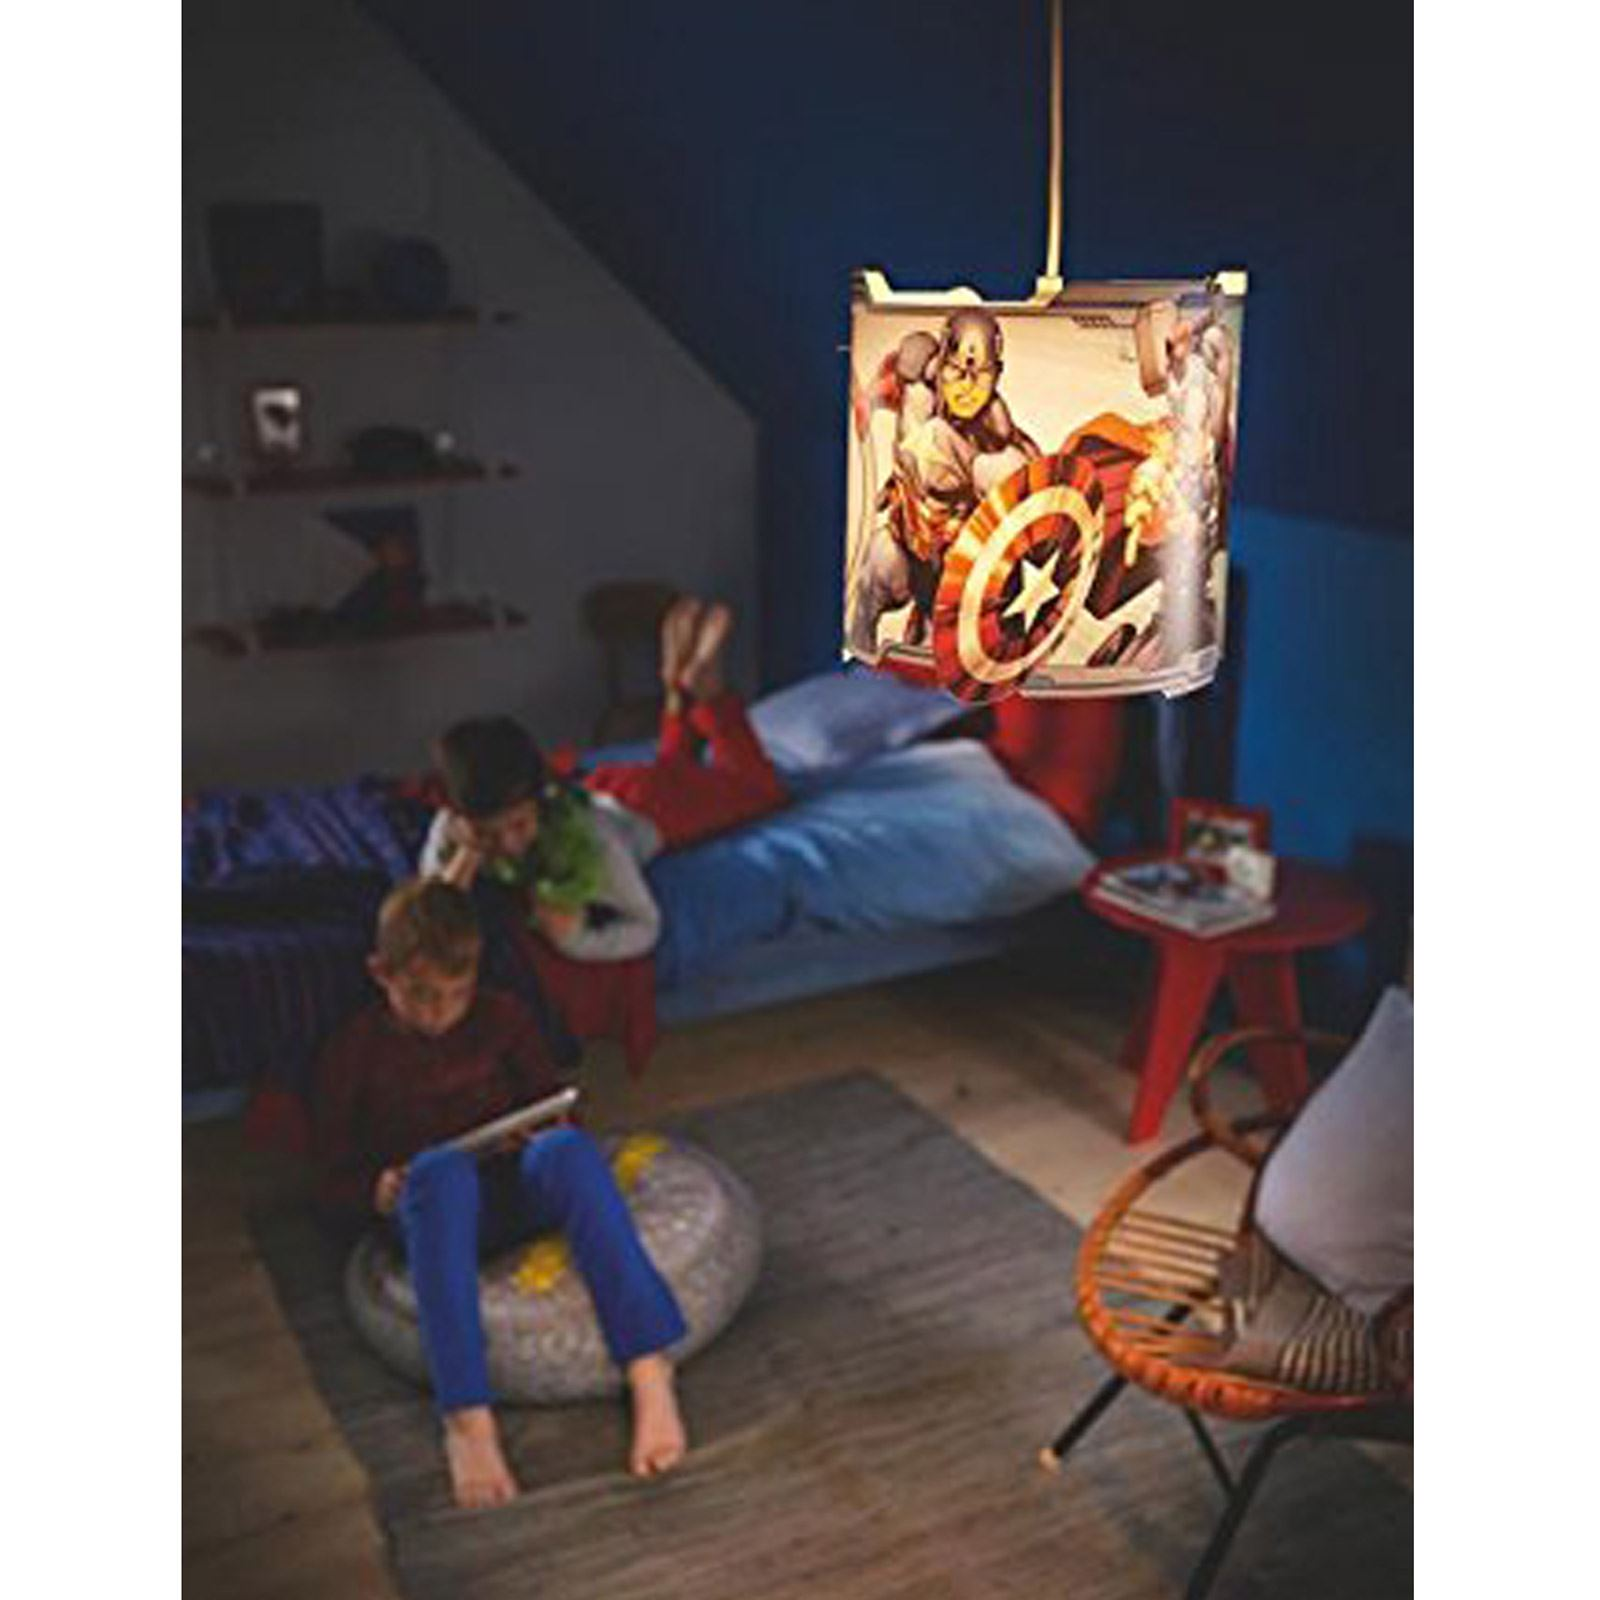 captain america table and chair set covers by hana reviews marvel avengers pendant lamp light shade new hulk